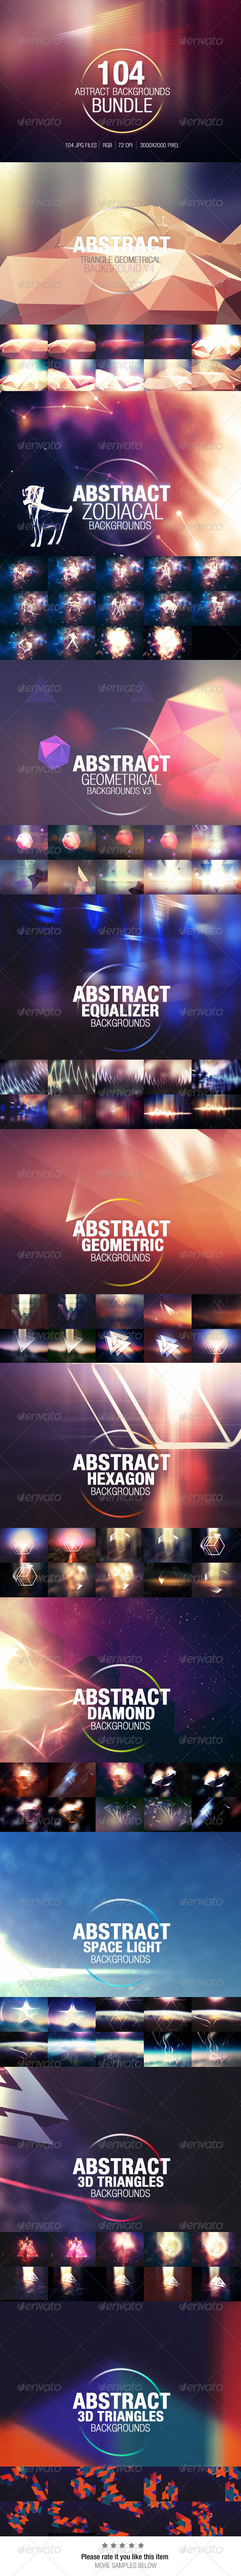 GraphicRiver 104 Abstract Backgrounds Bundle 8563460